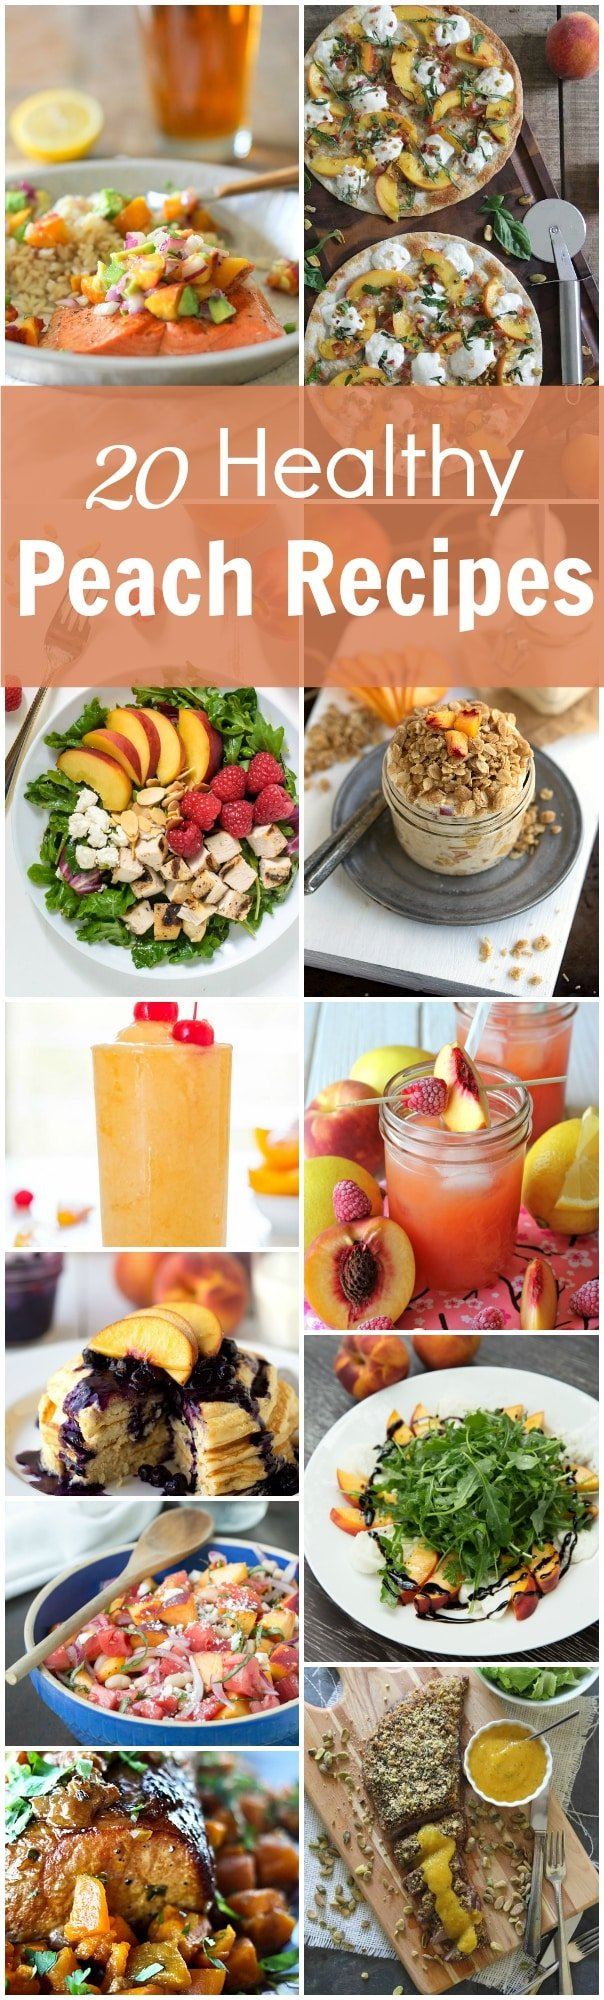 20 Healthy Peach Recipes to try before the summer is over. Hope you enjoy this delicious, juicy and fresh peach recipe collection.